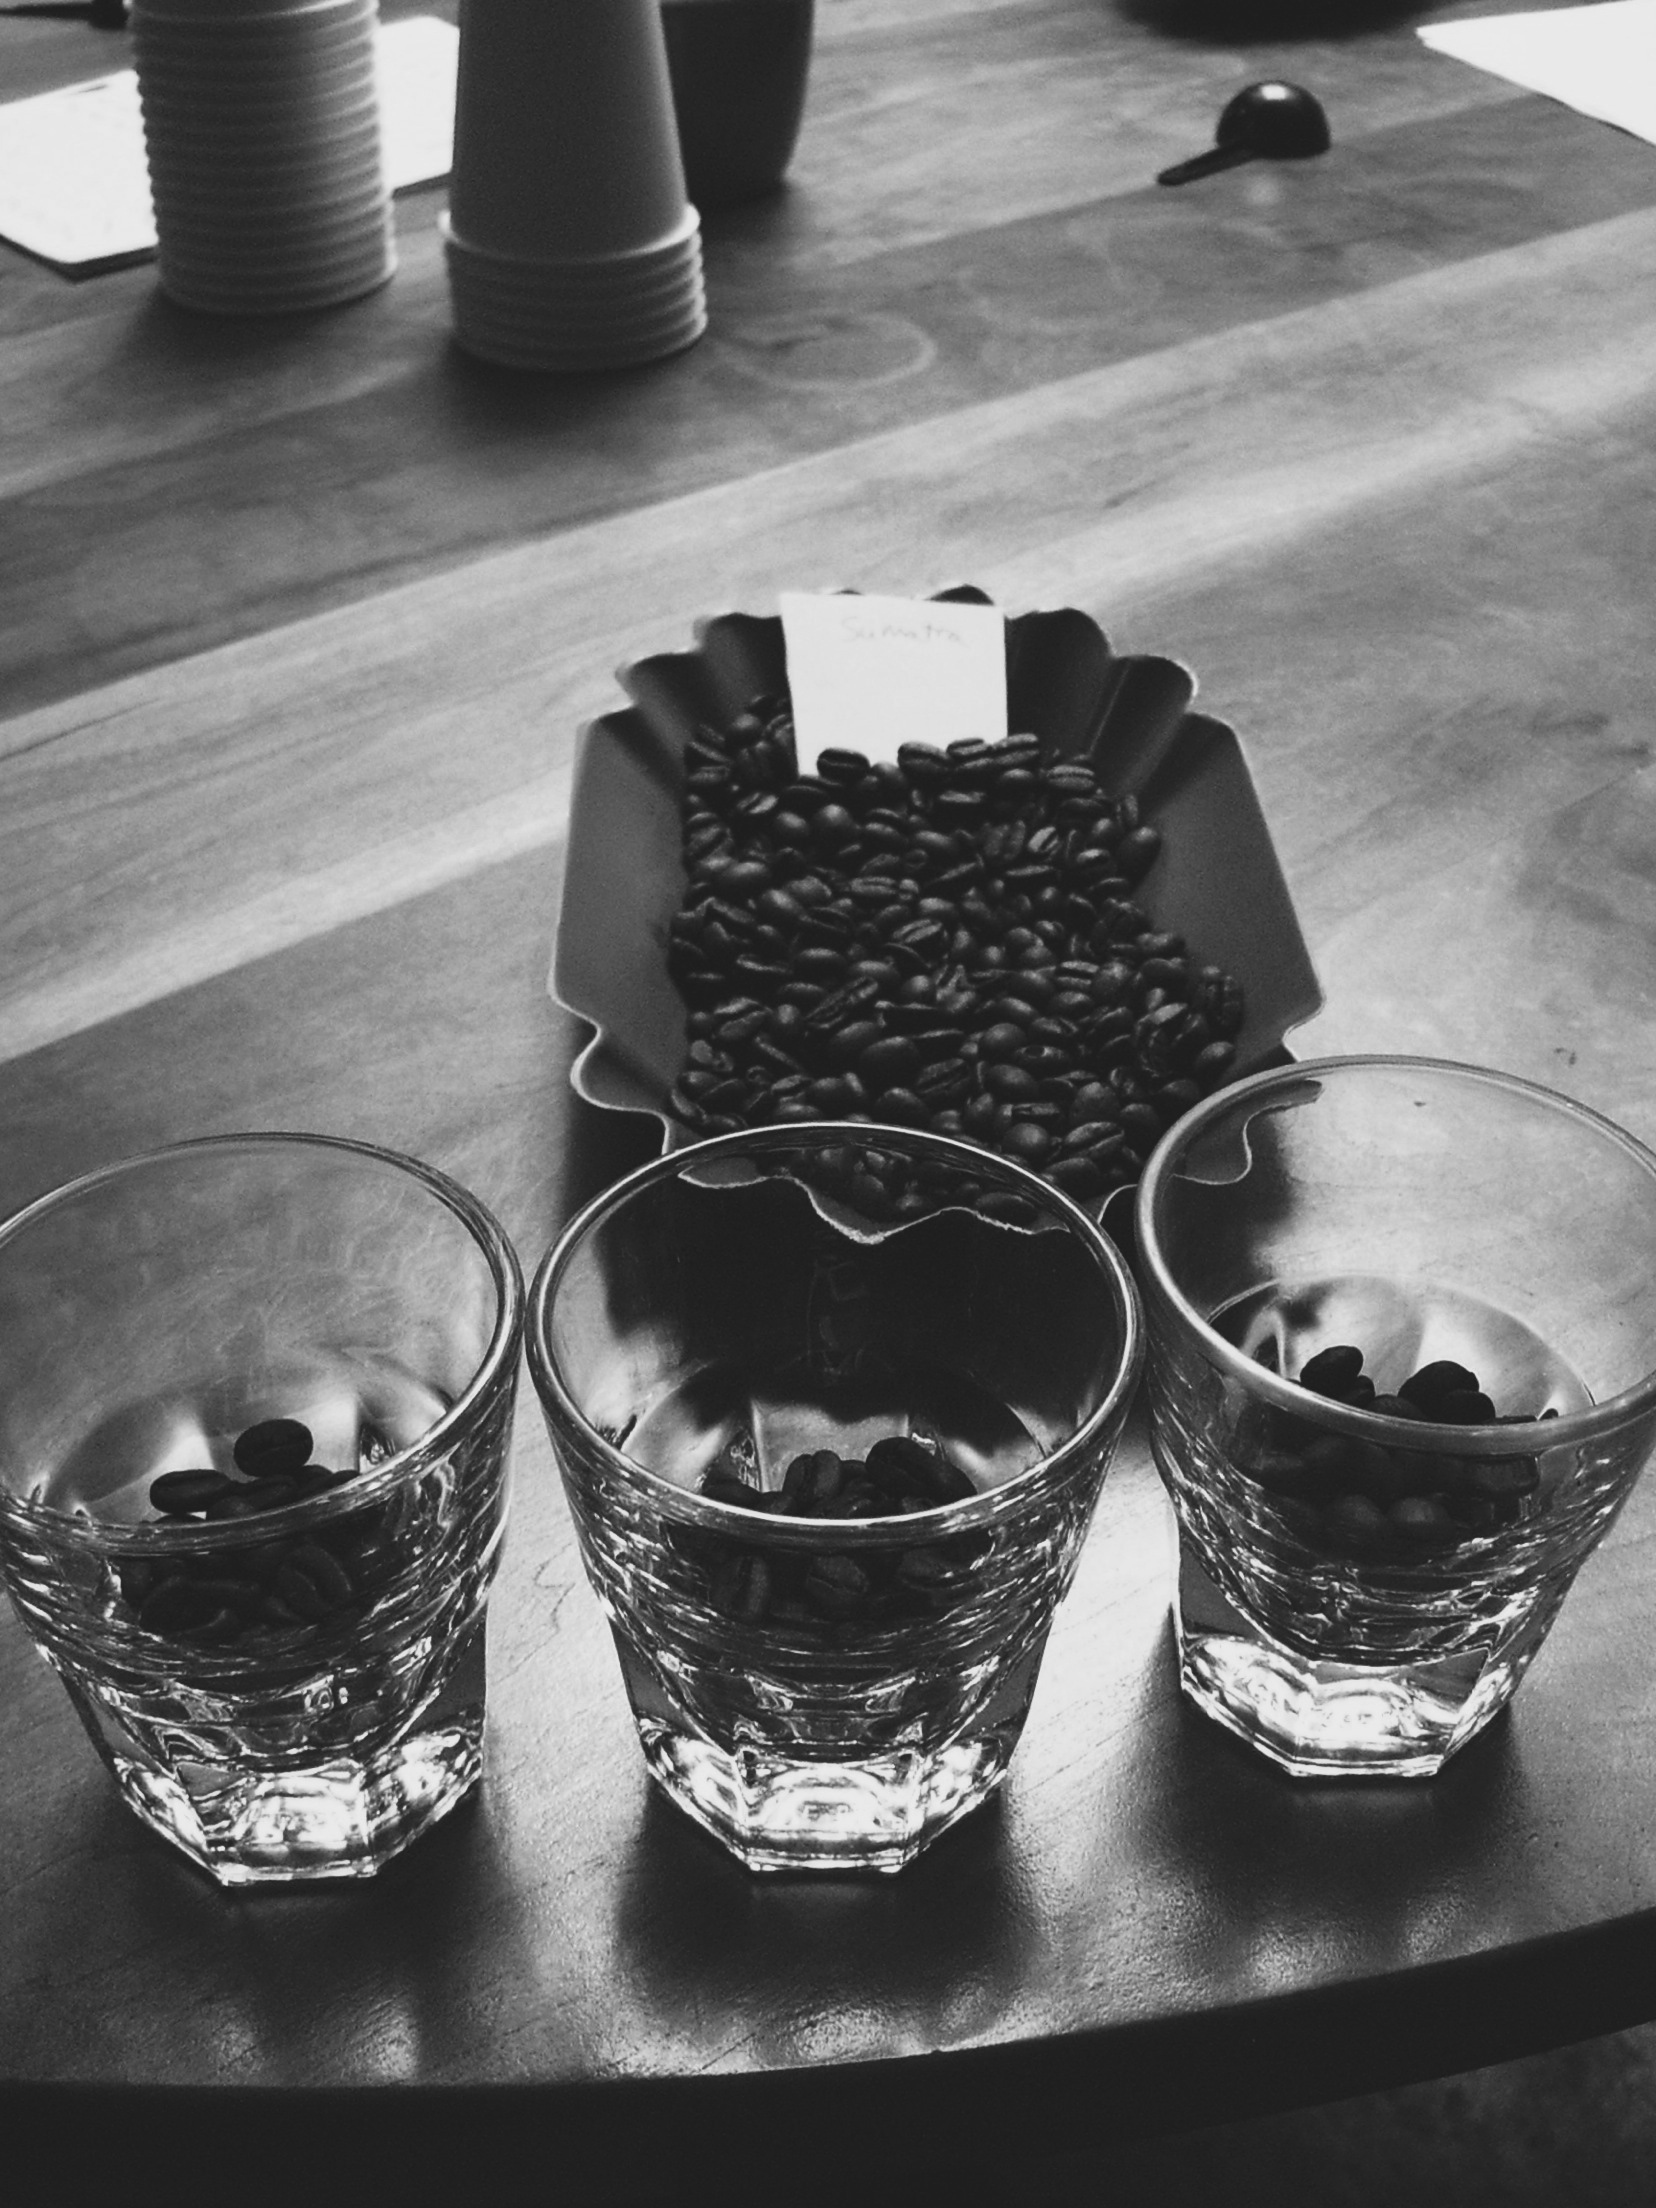 When cupping, you always do three of the same beans to account for any beans having an individual defect.